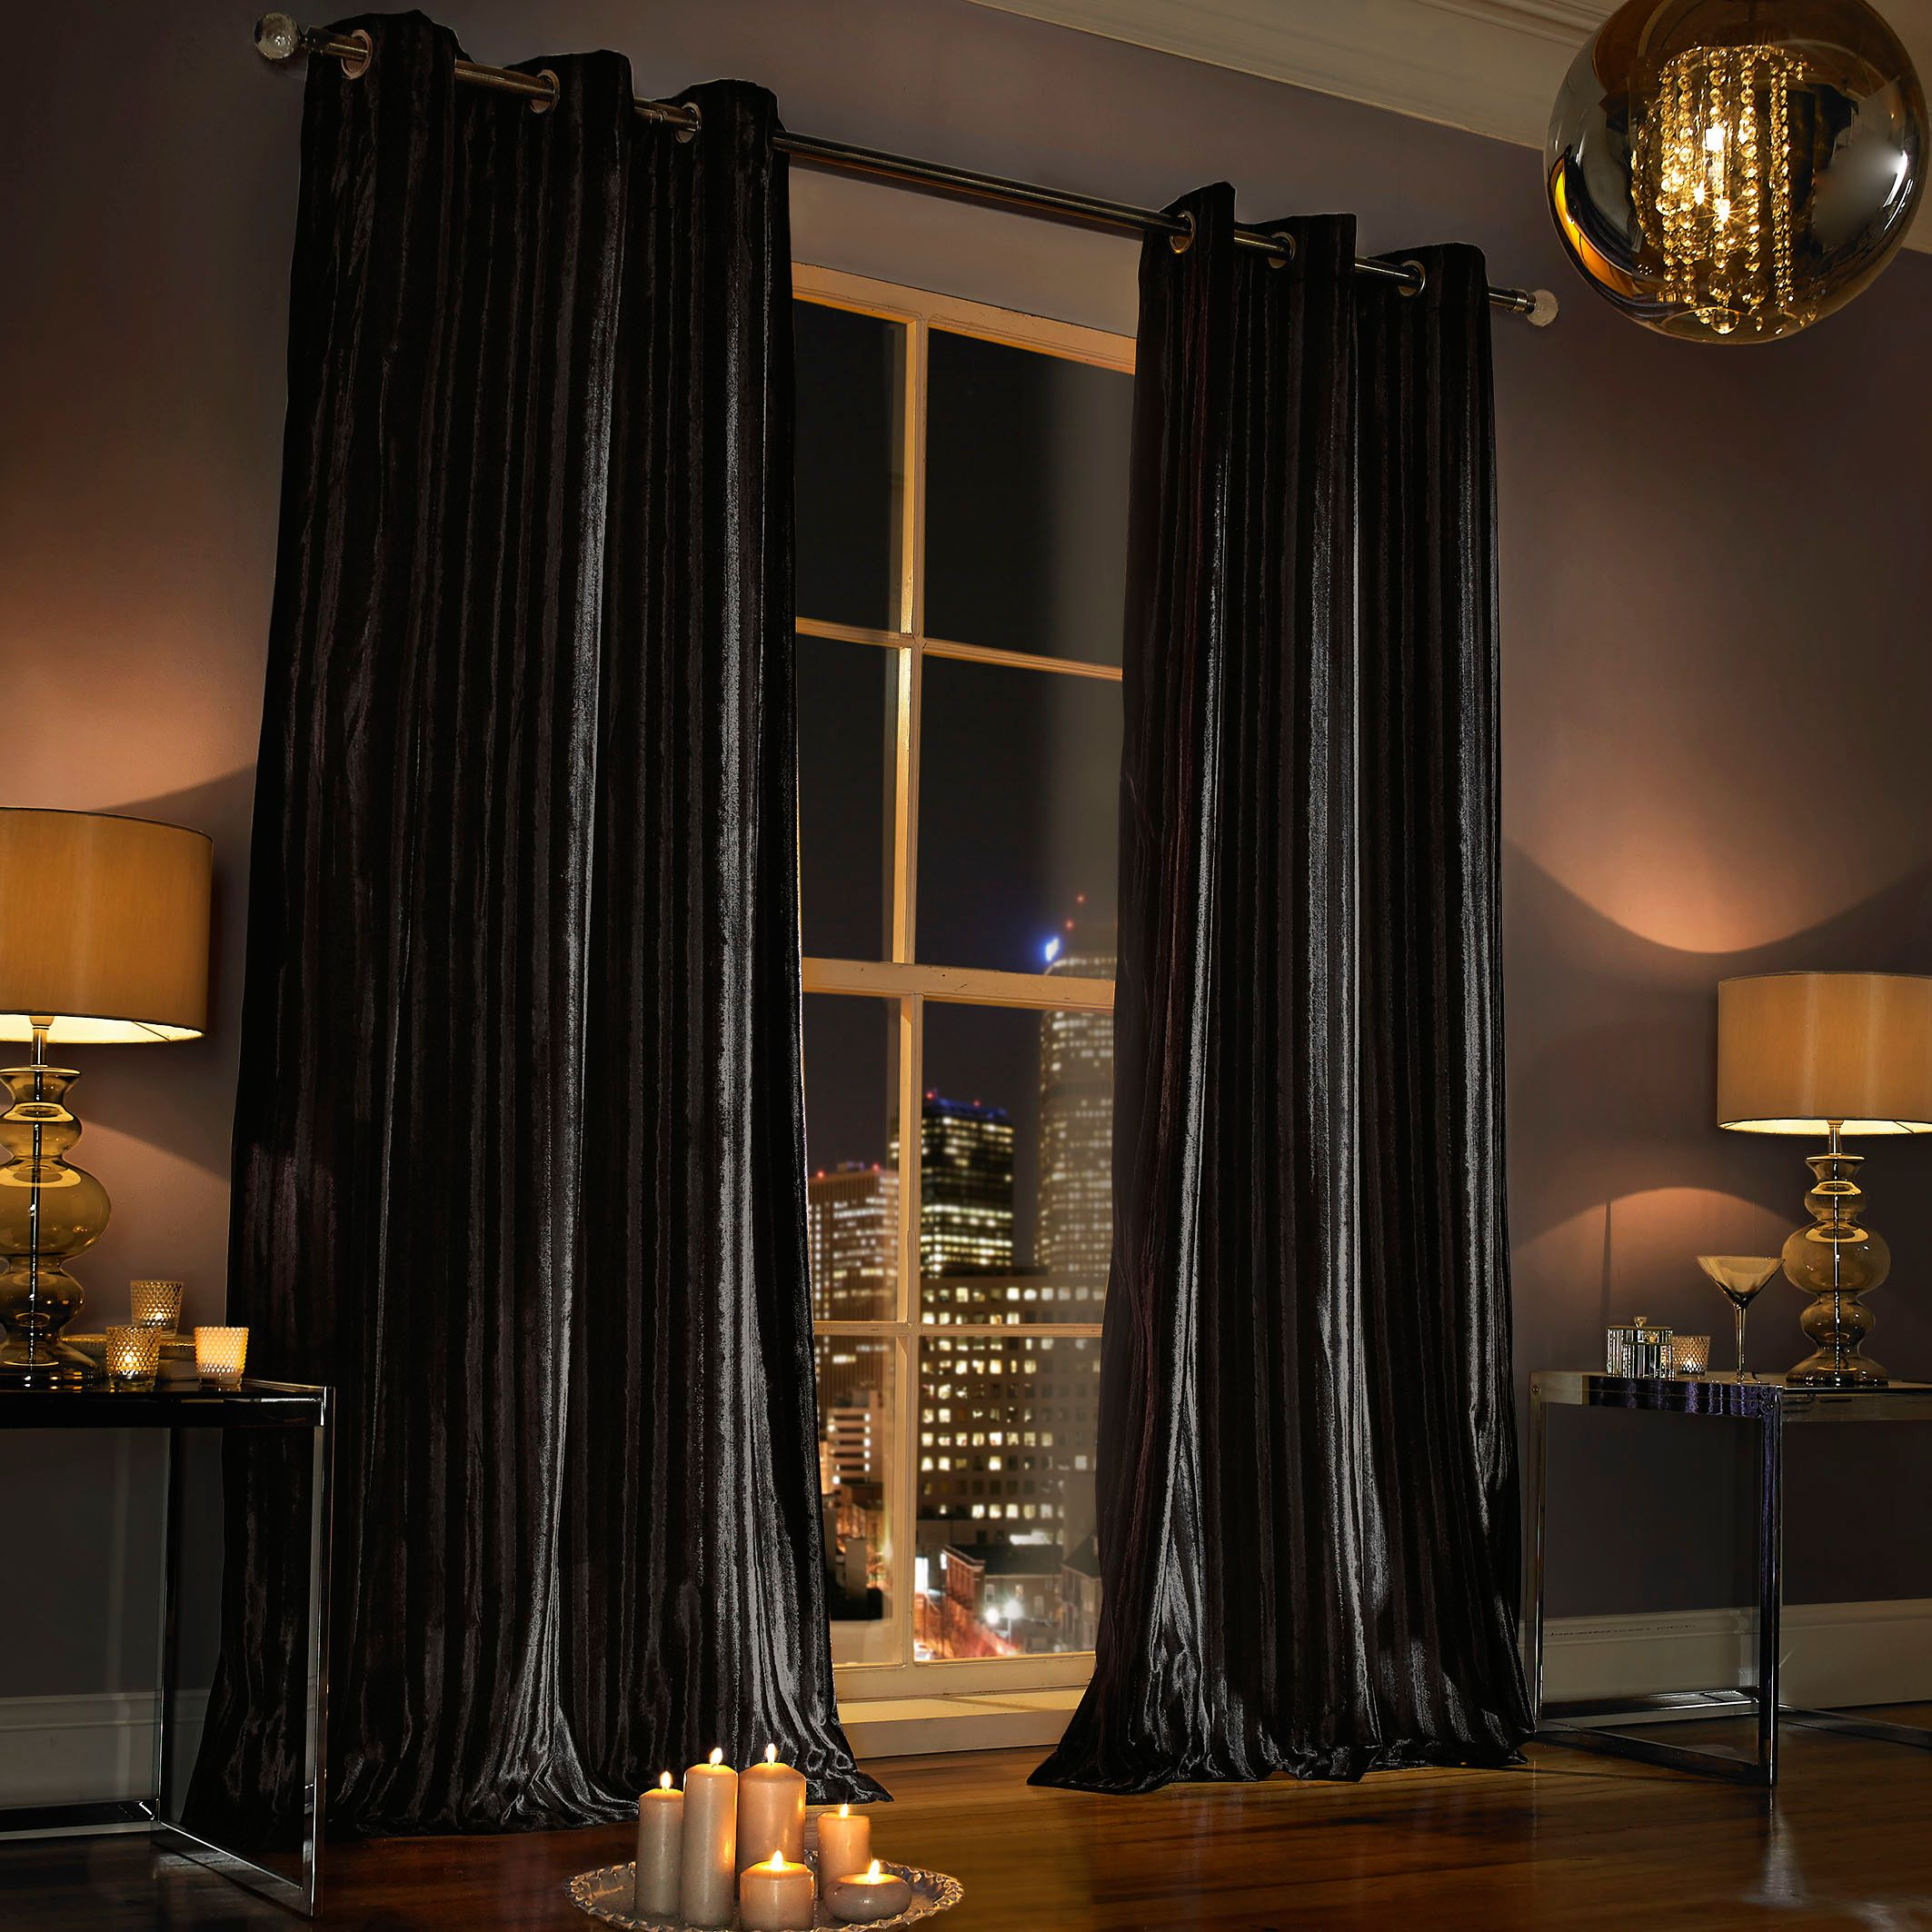 terrys phoenix luxury ready eyelet delivery fabrics products made uk thermal curtains citron interlined